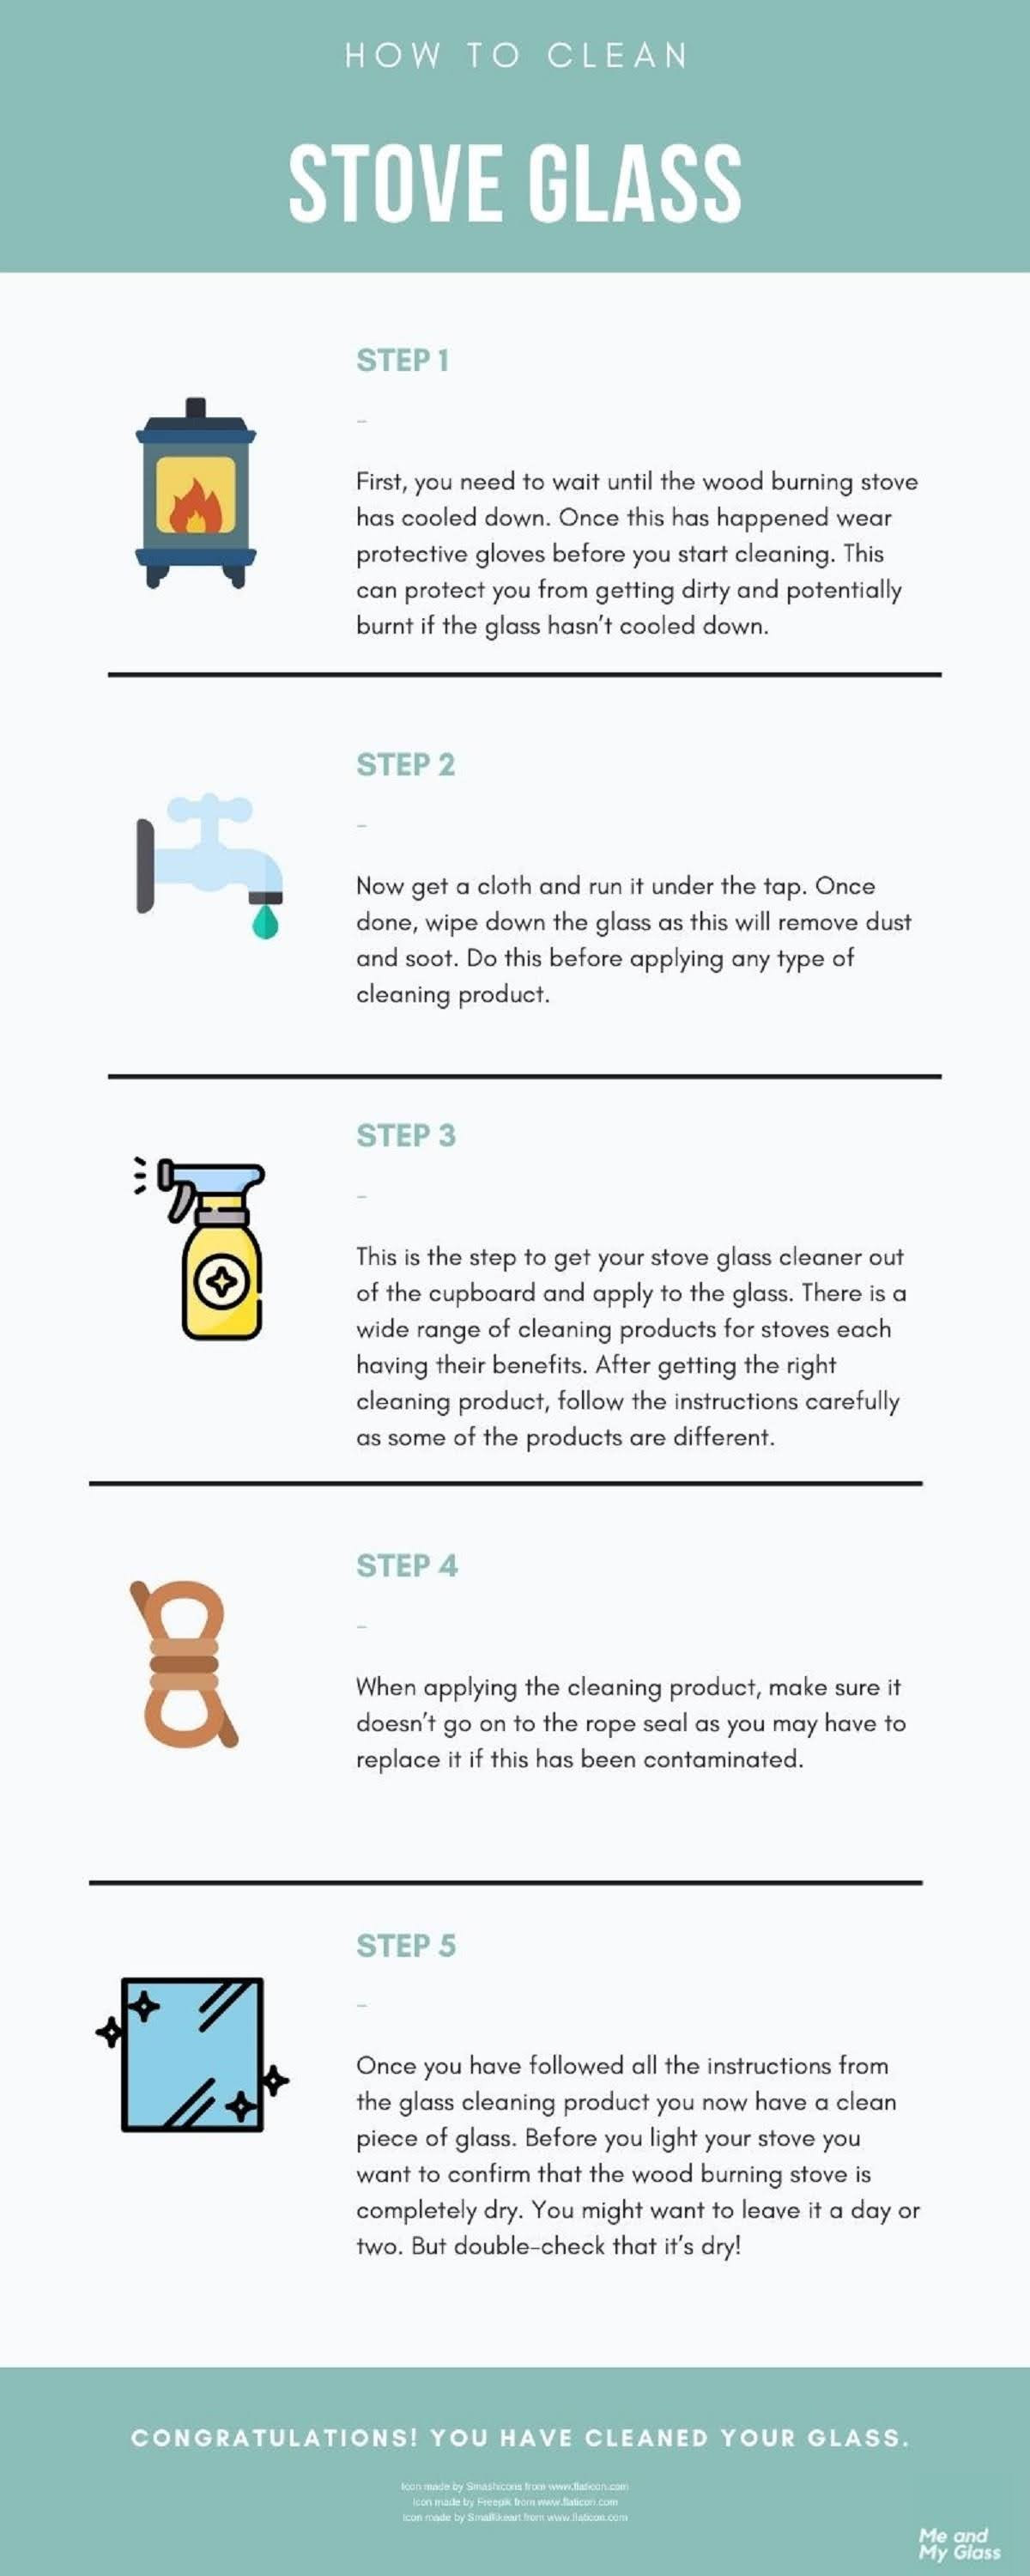 how-to-clean-stove-glass-for-great-results-infographic